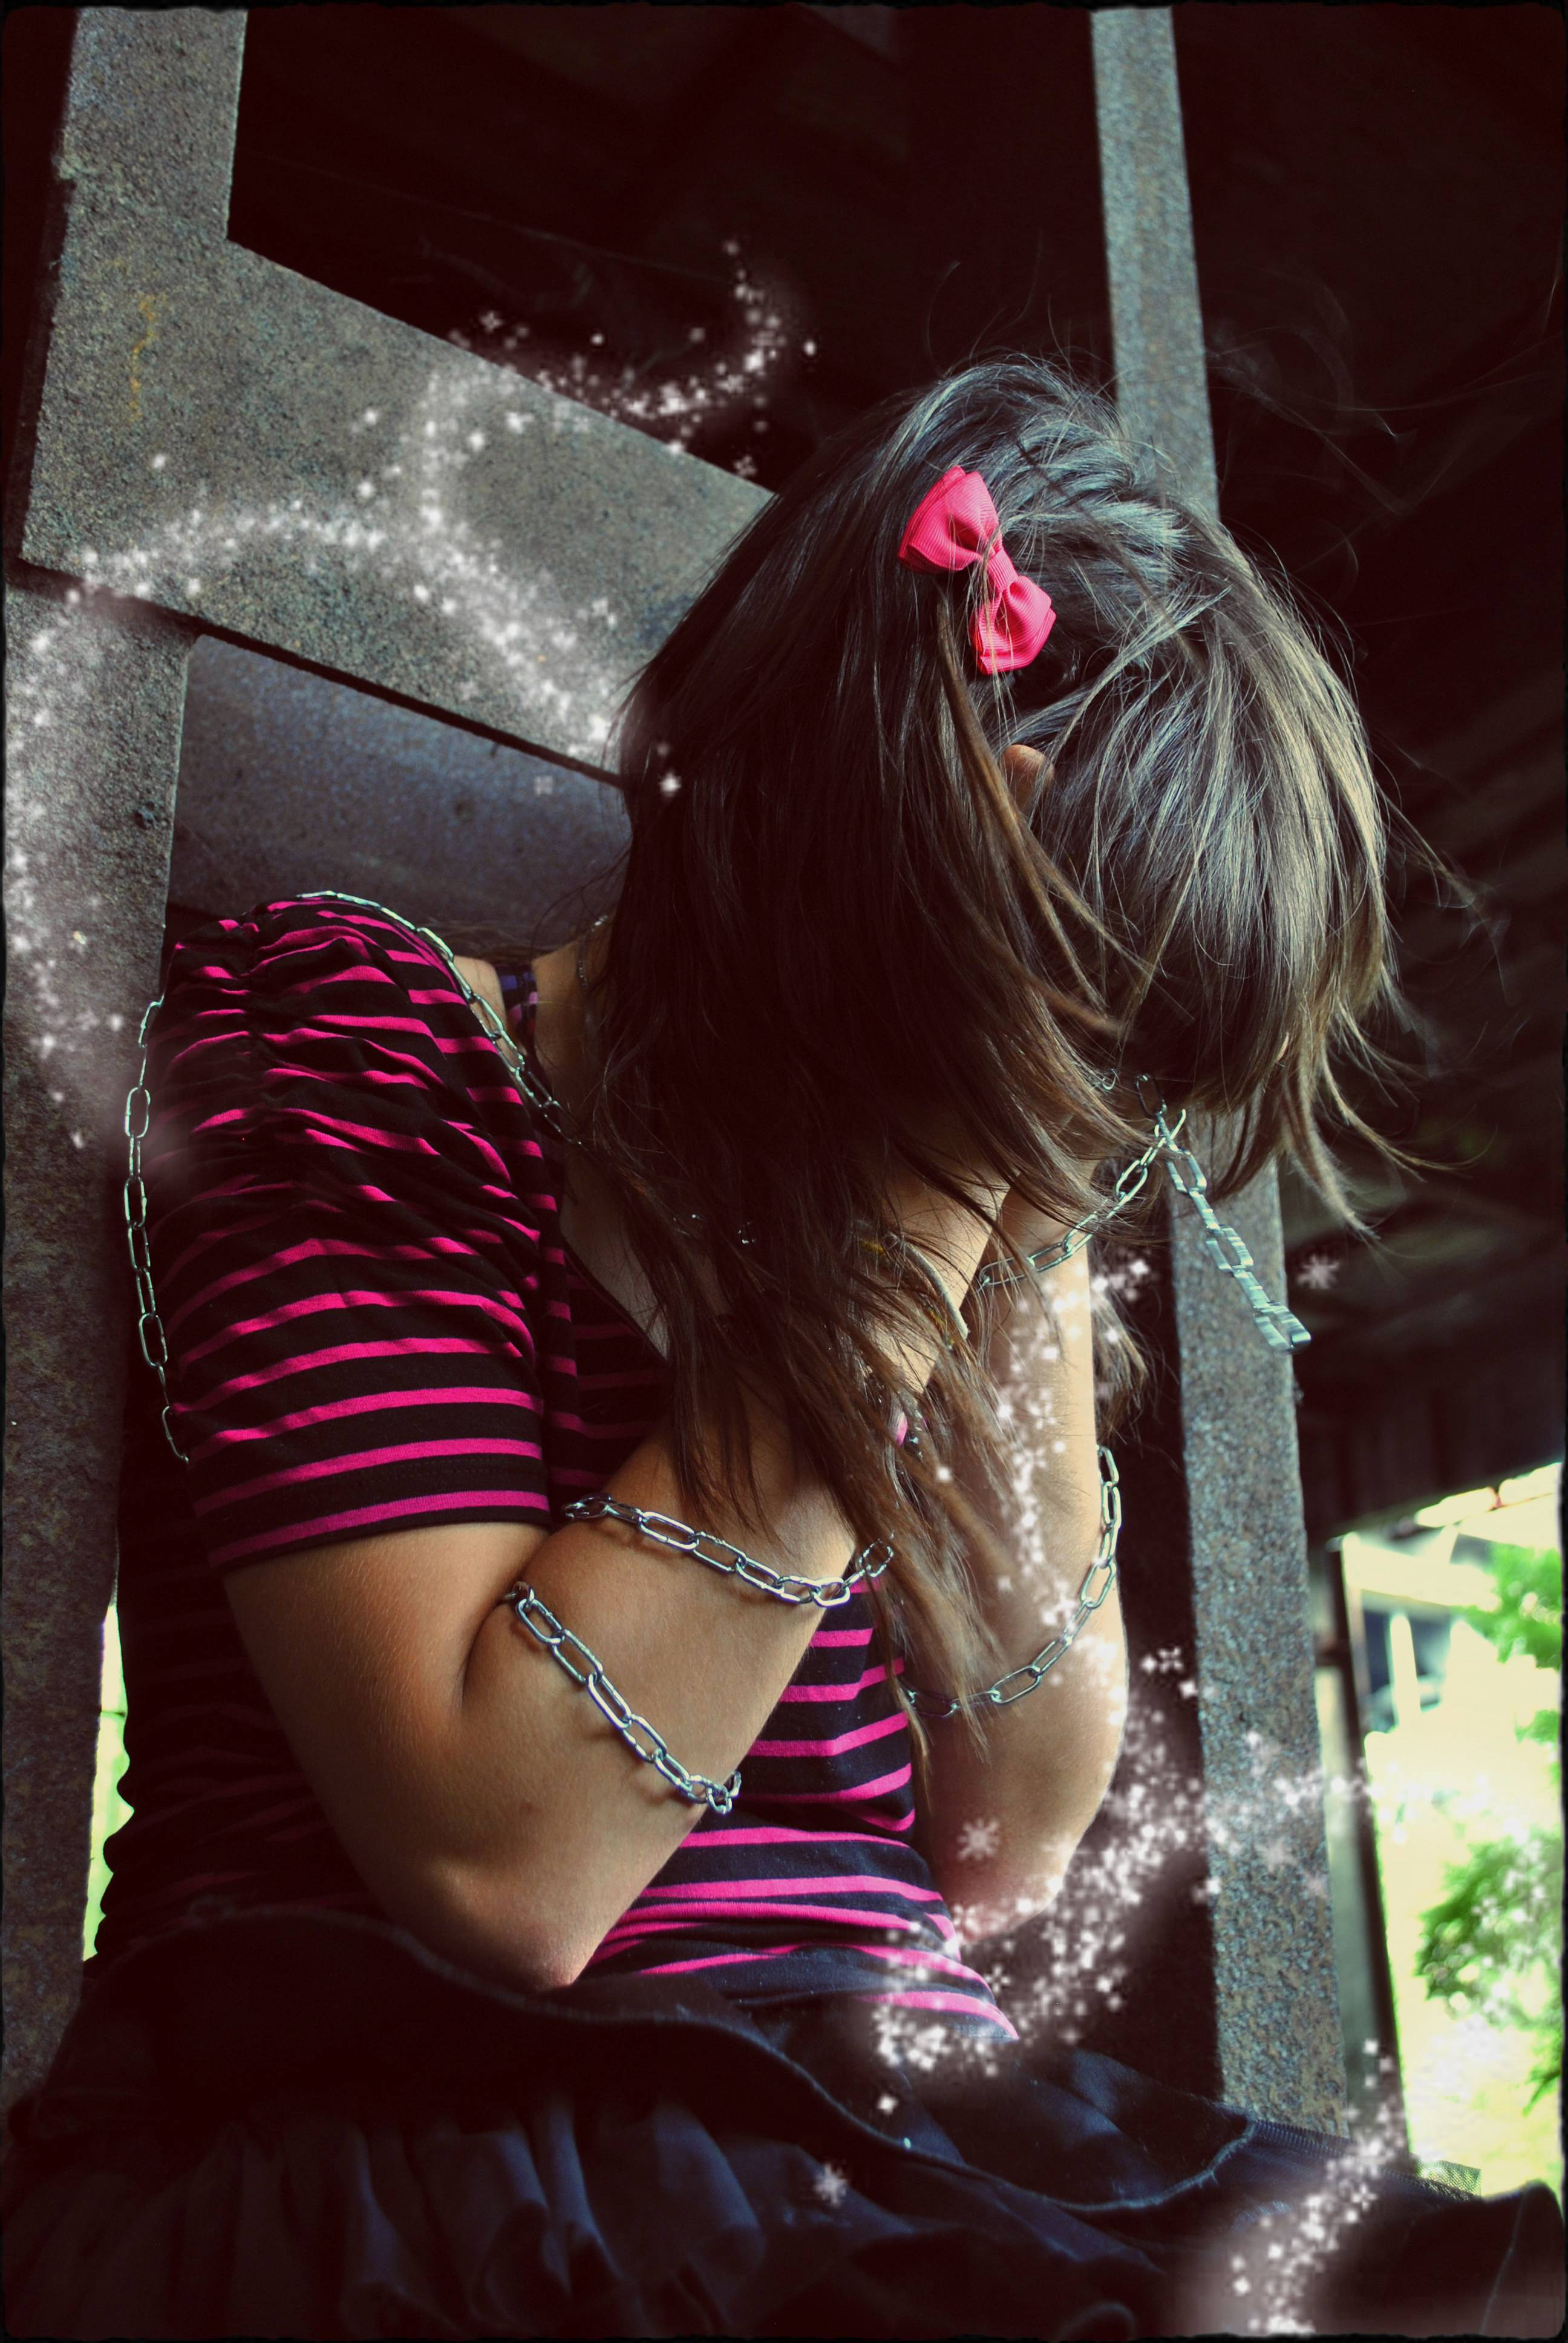 2592x3872 Sad Emo girl wallpaper from EMO wallpapers